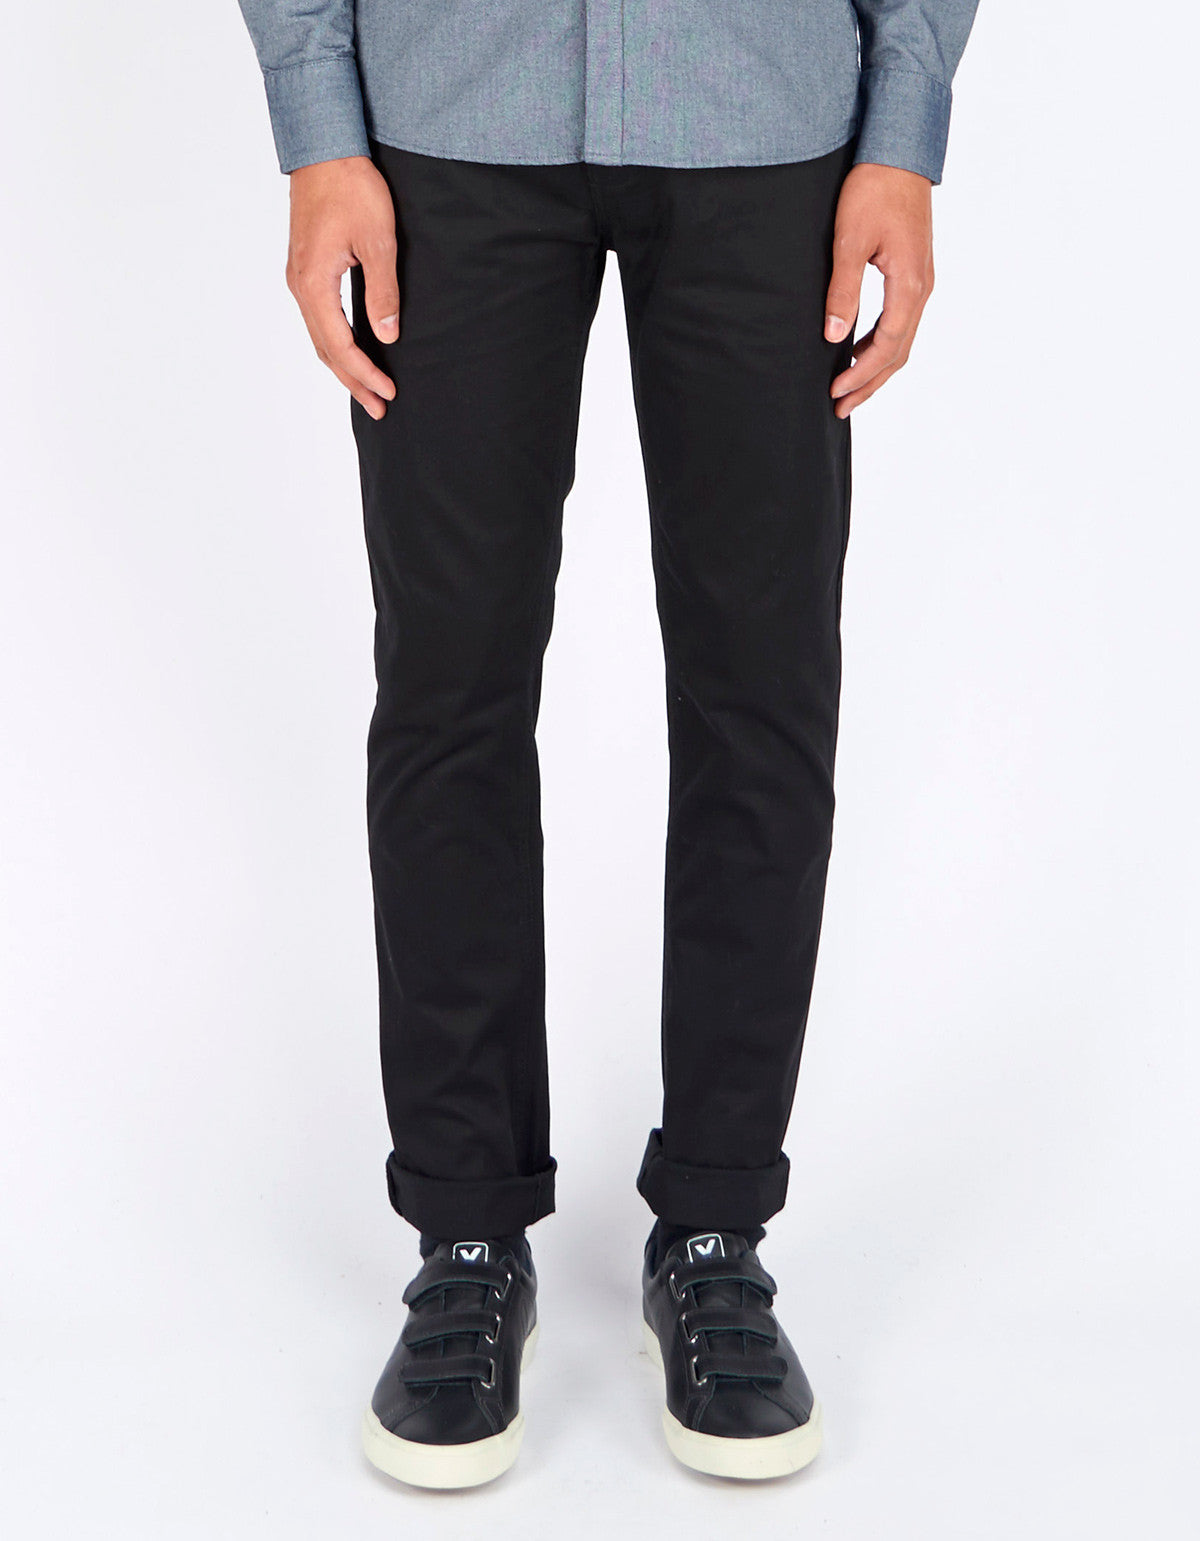 Minimum Norden Chino Black - Still Life - 1